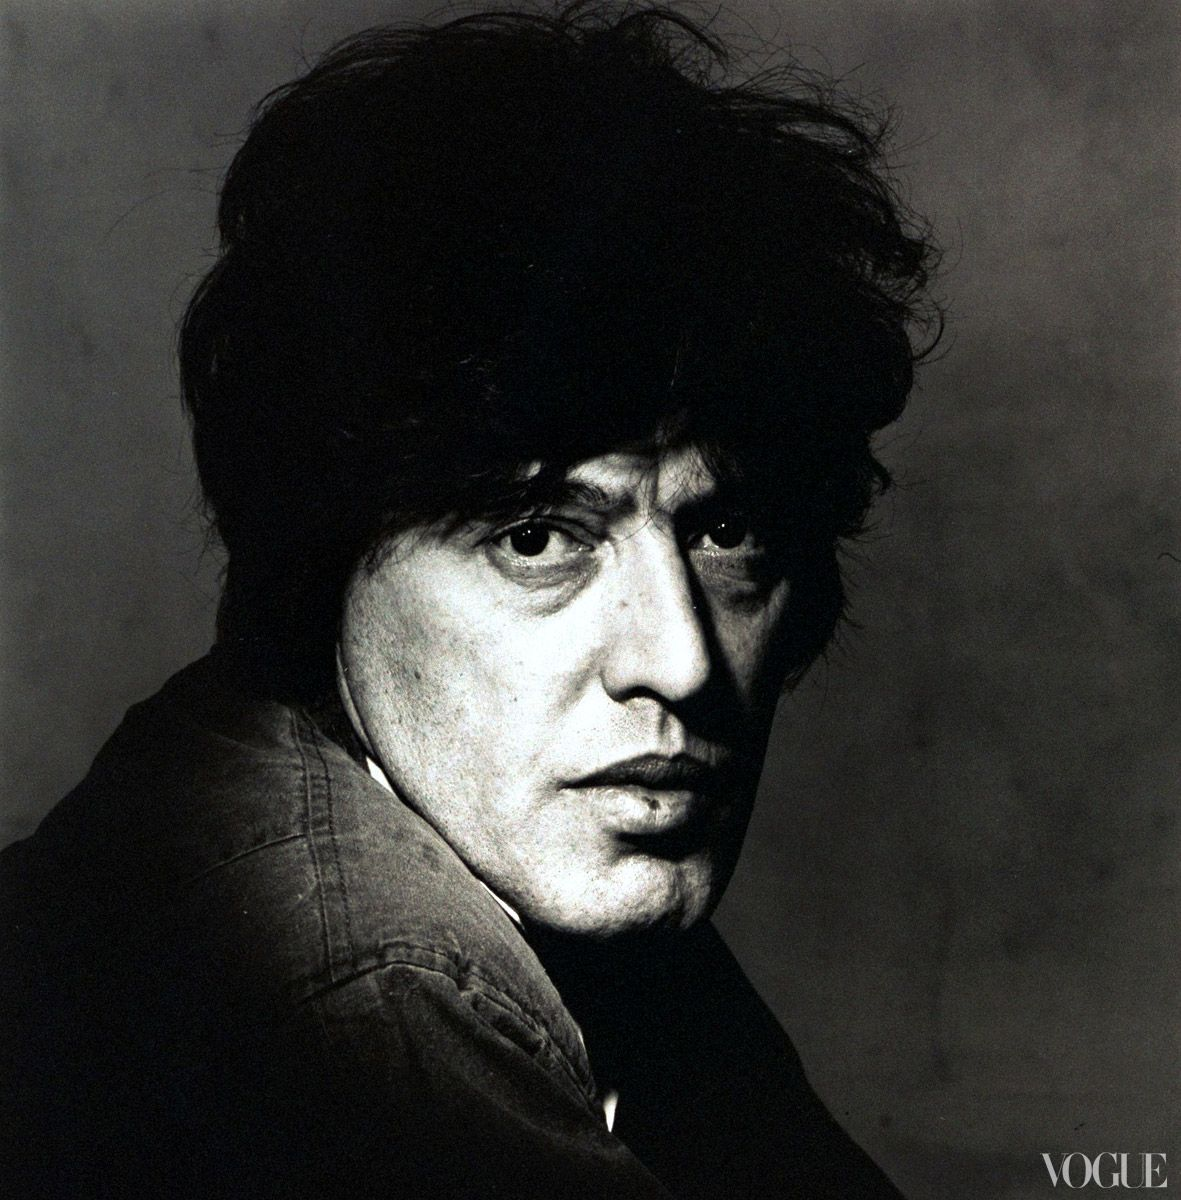 Vogue March 1984 British Playwright Tom Stoppard